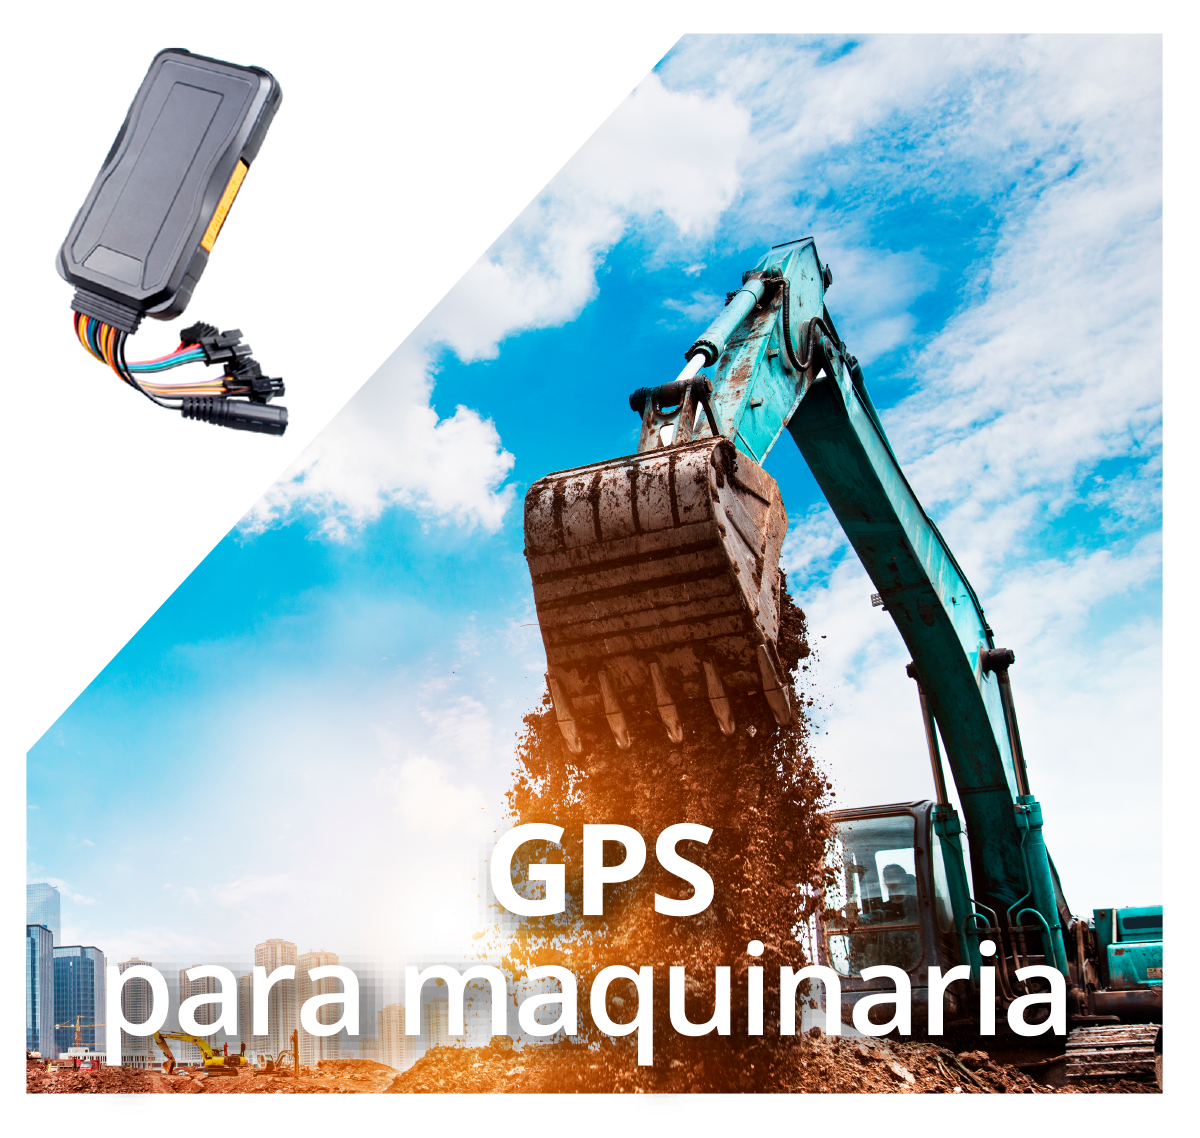 BBOX Security Seguridad guardias virtuales maquinaria - Servicio de Rastreo Satelital y GPS en Guadalajara | BBOX Security